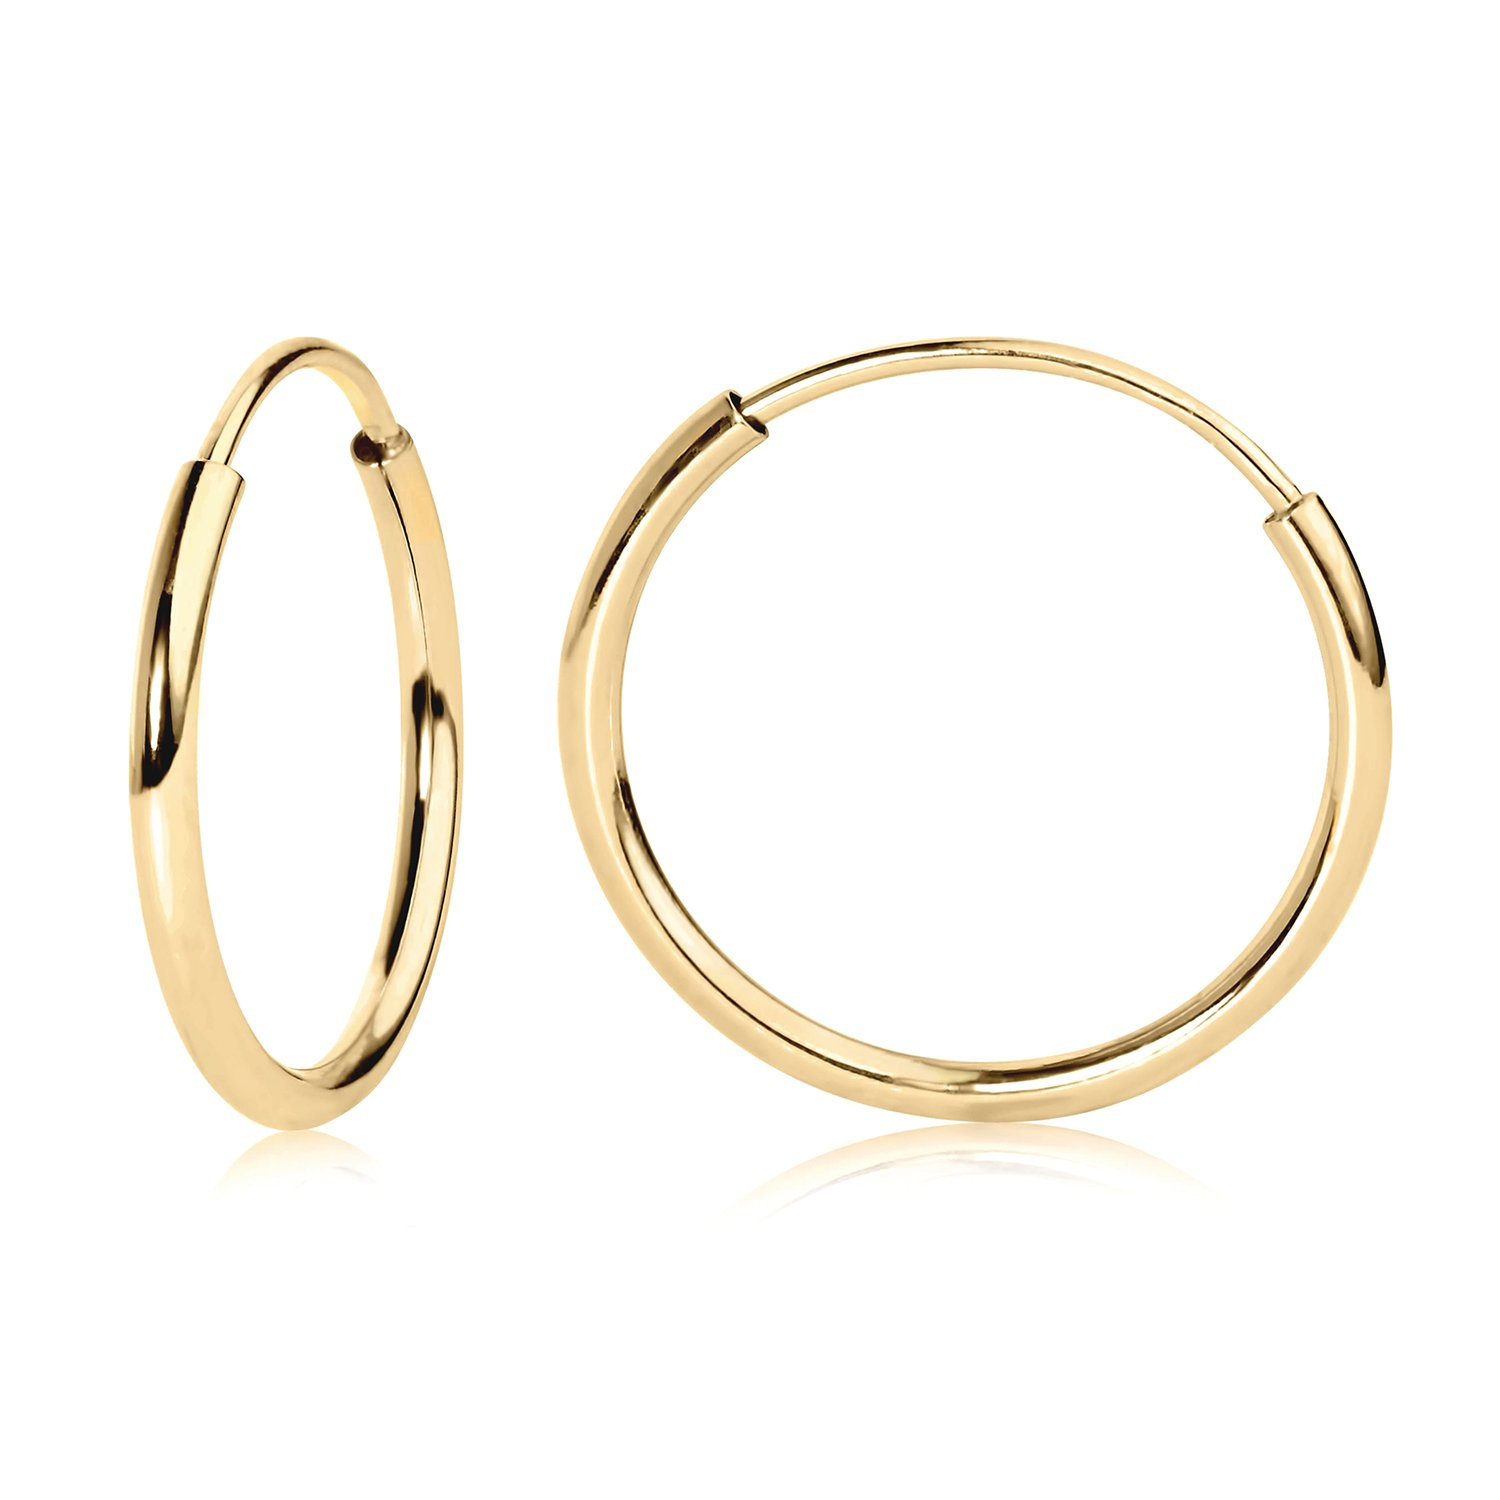 14k Yellow Gold Endless Hoop Earrings 12mm 41160